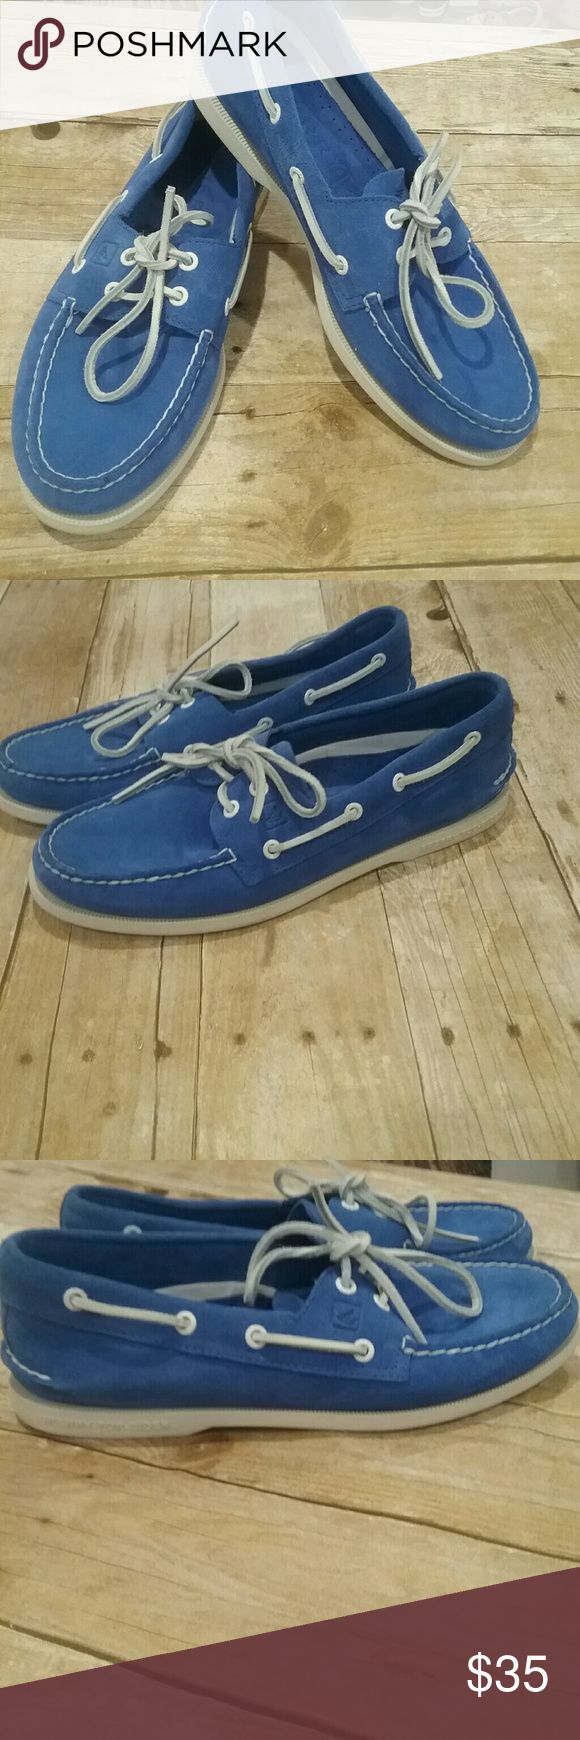 Sperry mens 2 eye top sider Sperry mens 2 eye cobalt blue suede  top siders- PRE-OWNED- GREAT condition- good looking shoes- Sz 9.5 boat shoes - some minimal wear on laces and soles Sperry Top-Sider Shoes Boat Shoes